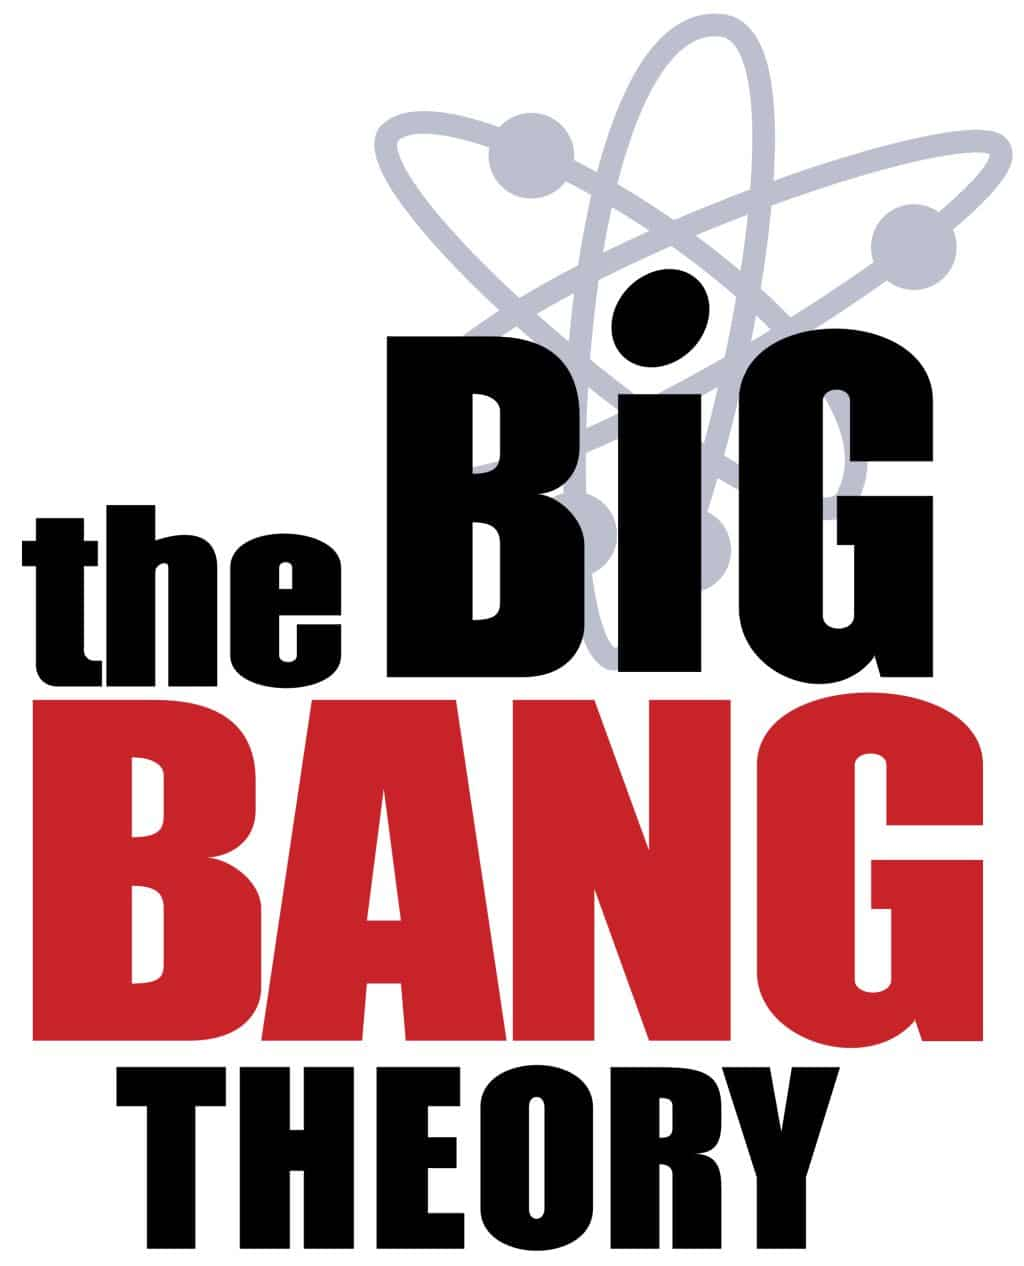 Popular tv show The Big Bang Theory